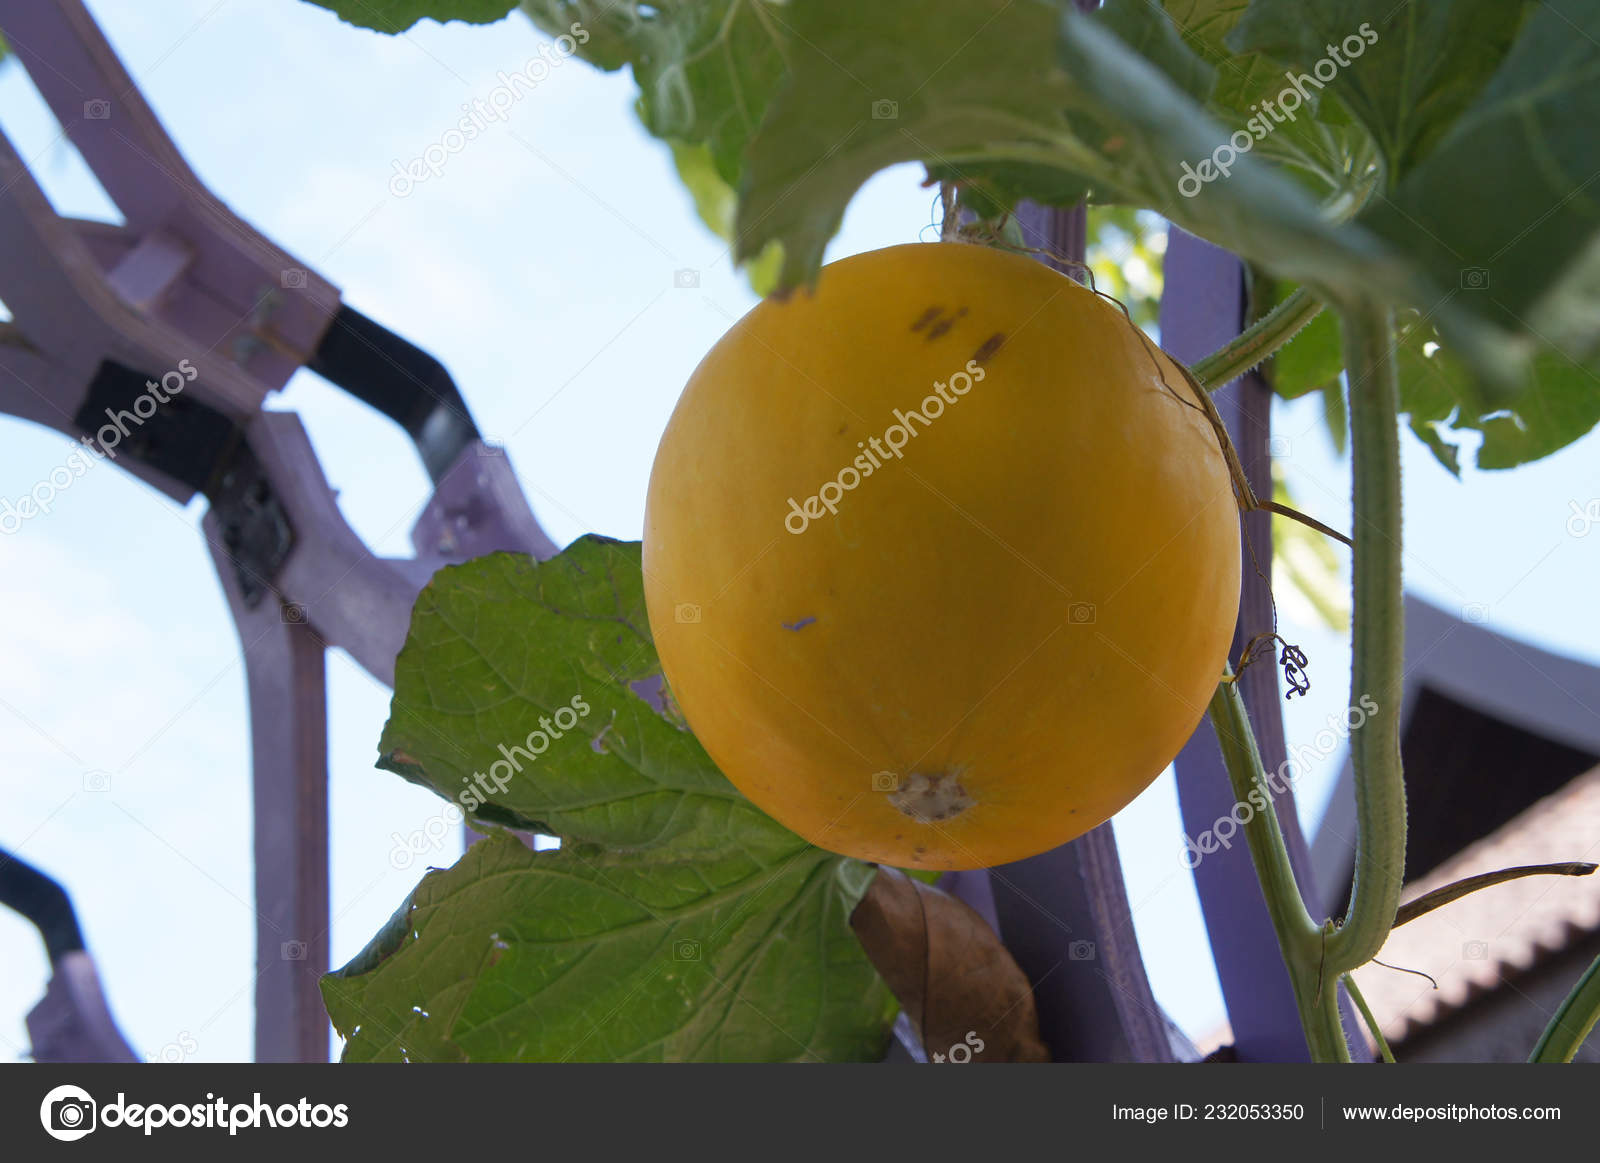 Cantaloupe Rock Melon Fruit Scientific Name Cucumis Melo Var Cantalupo Stock Photo C Aisyaqilumar 232053350 He was seen being annoying by orange until he decided to take off with his fiancée, balloon. depositphotos